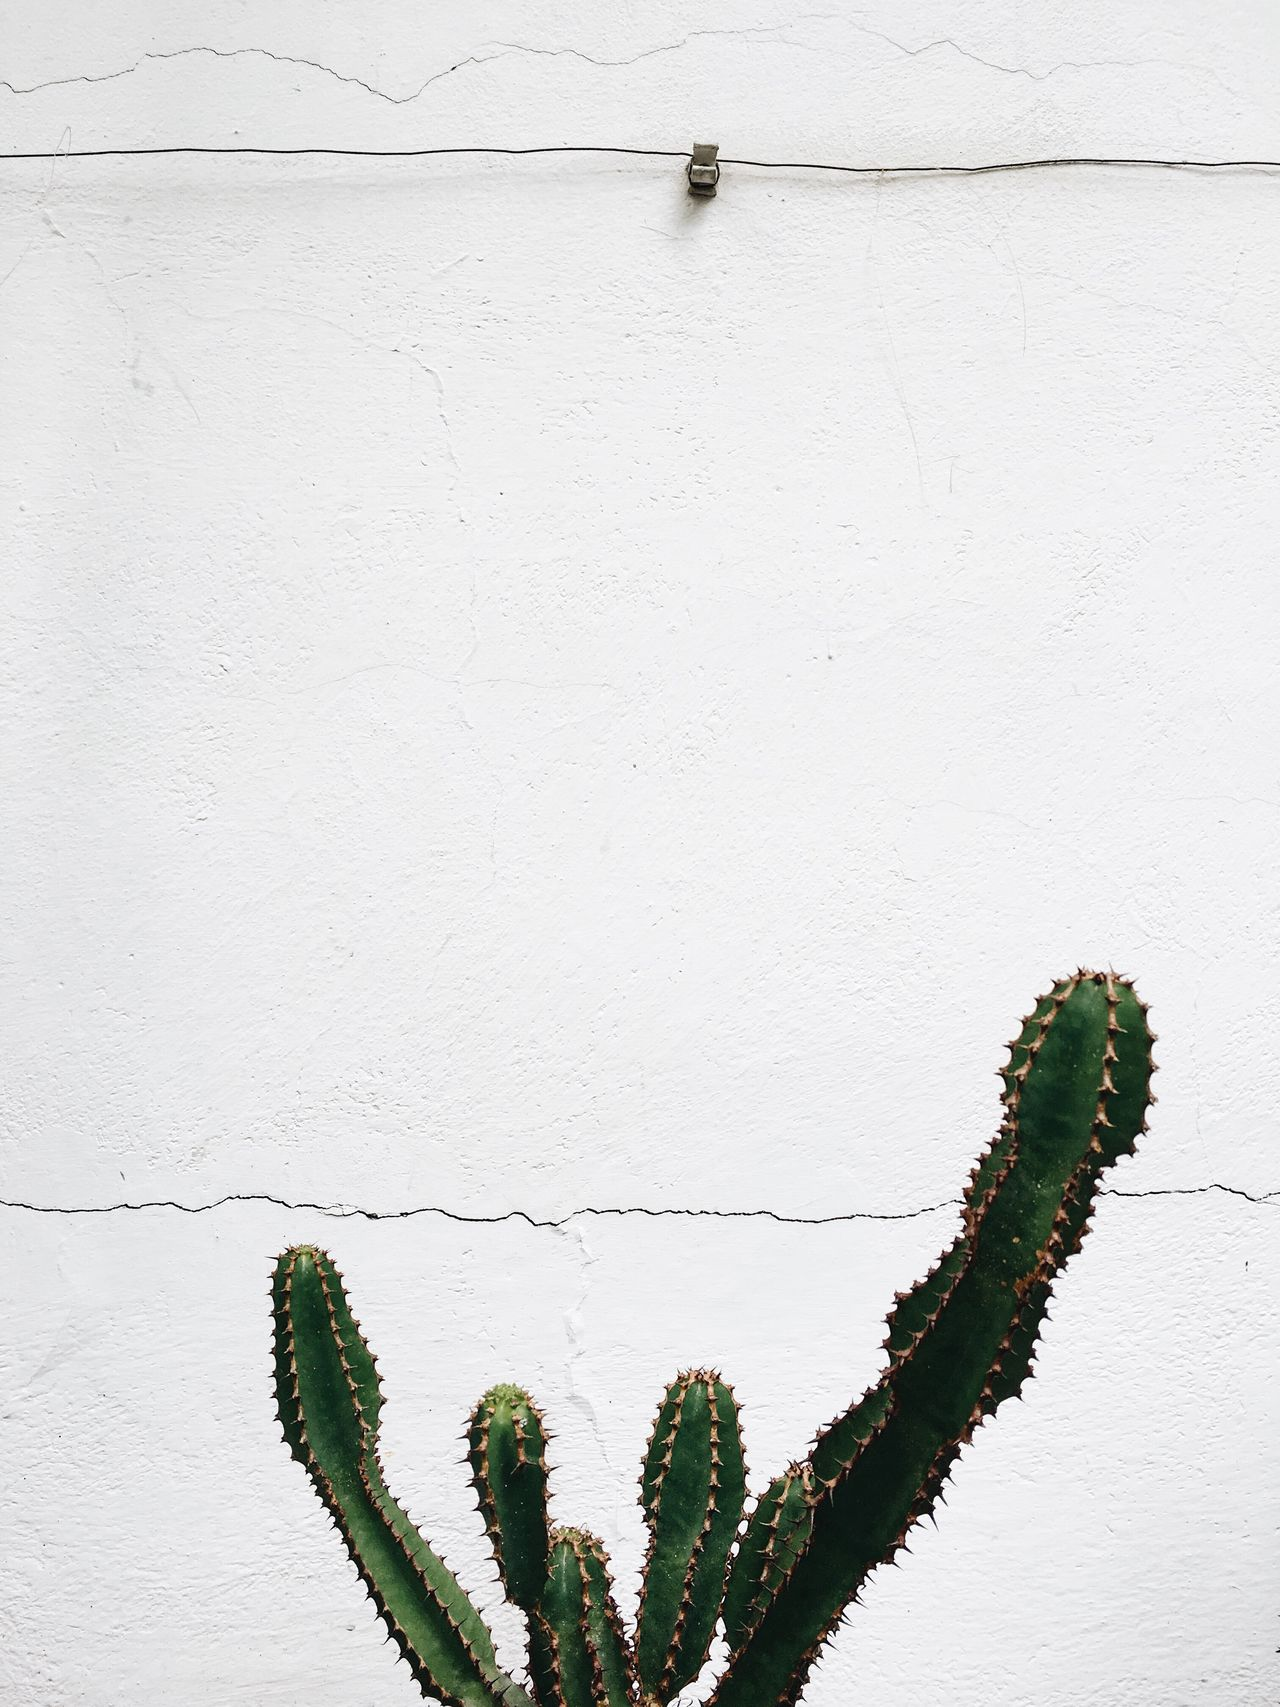 Wall - Building Feature No People Whitewashed Plant Nature Cactusporn Cactus Garden Cactus Flower Cactus White Color Fragility Freshness Beauty In Nature EyeEm Nature Lover Botanical Gardens Greenhouse Nature White Background Plant Growth Green Color